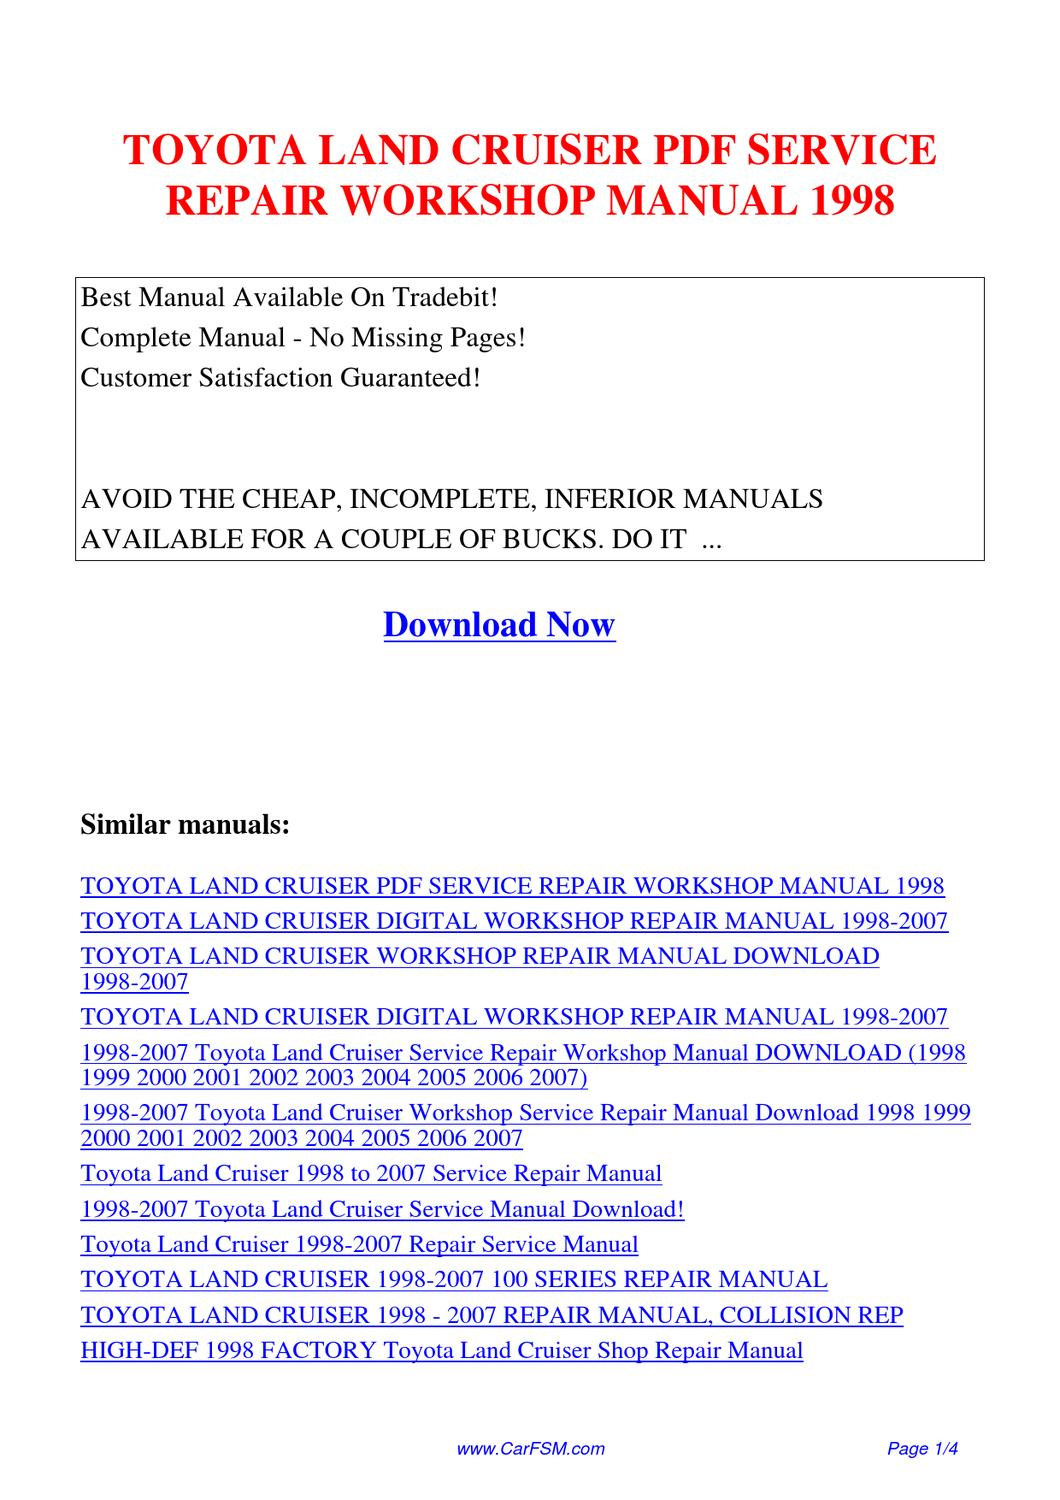 TOYOTA_LAND_CRUISER_SERVICE_REPAIR_WORKSHOP_MANUAL_1998 by Guang Dong -  issuu